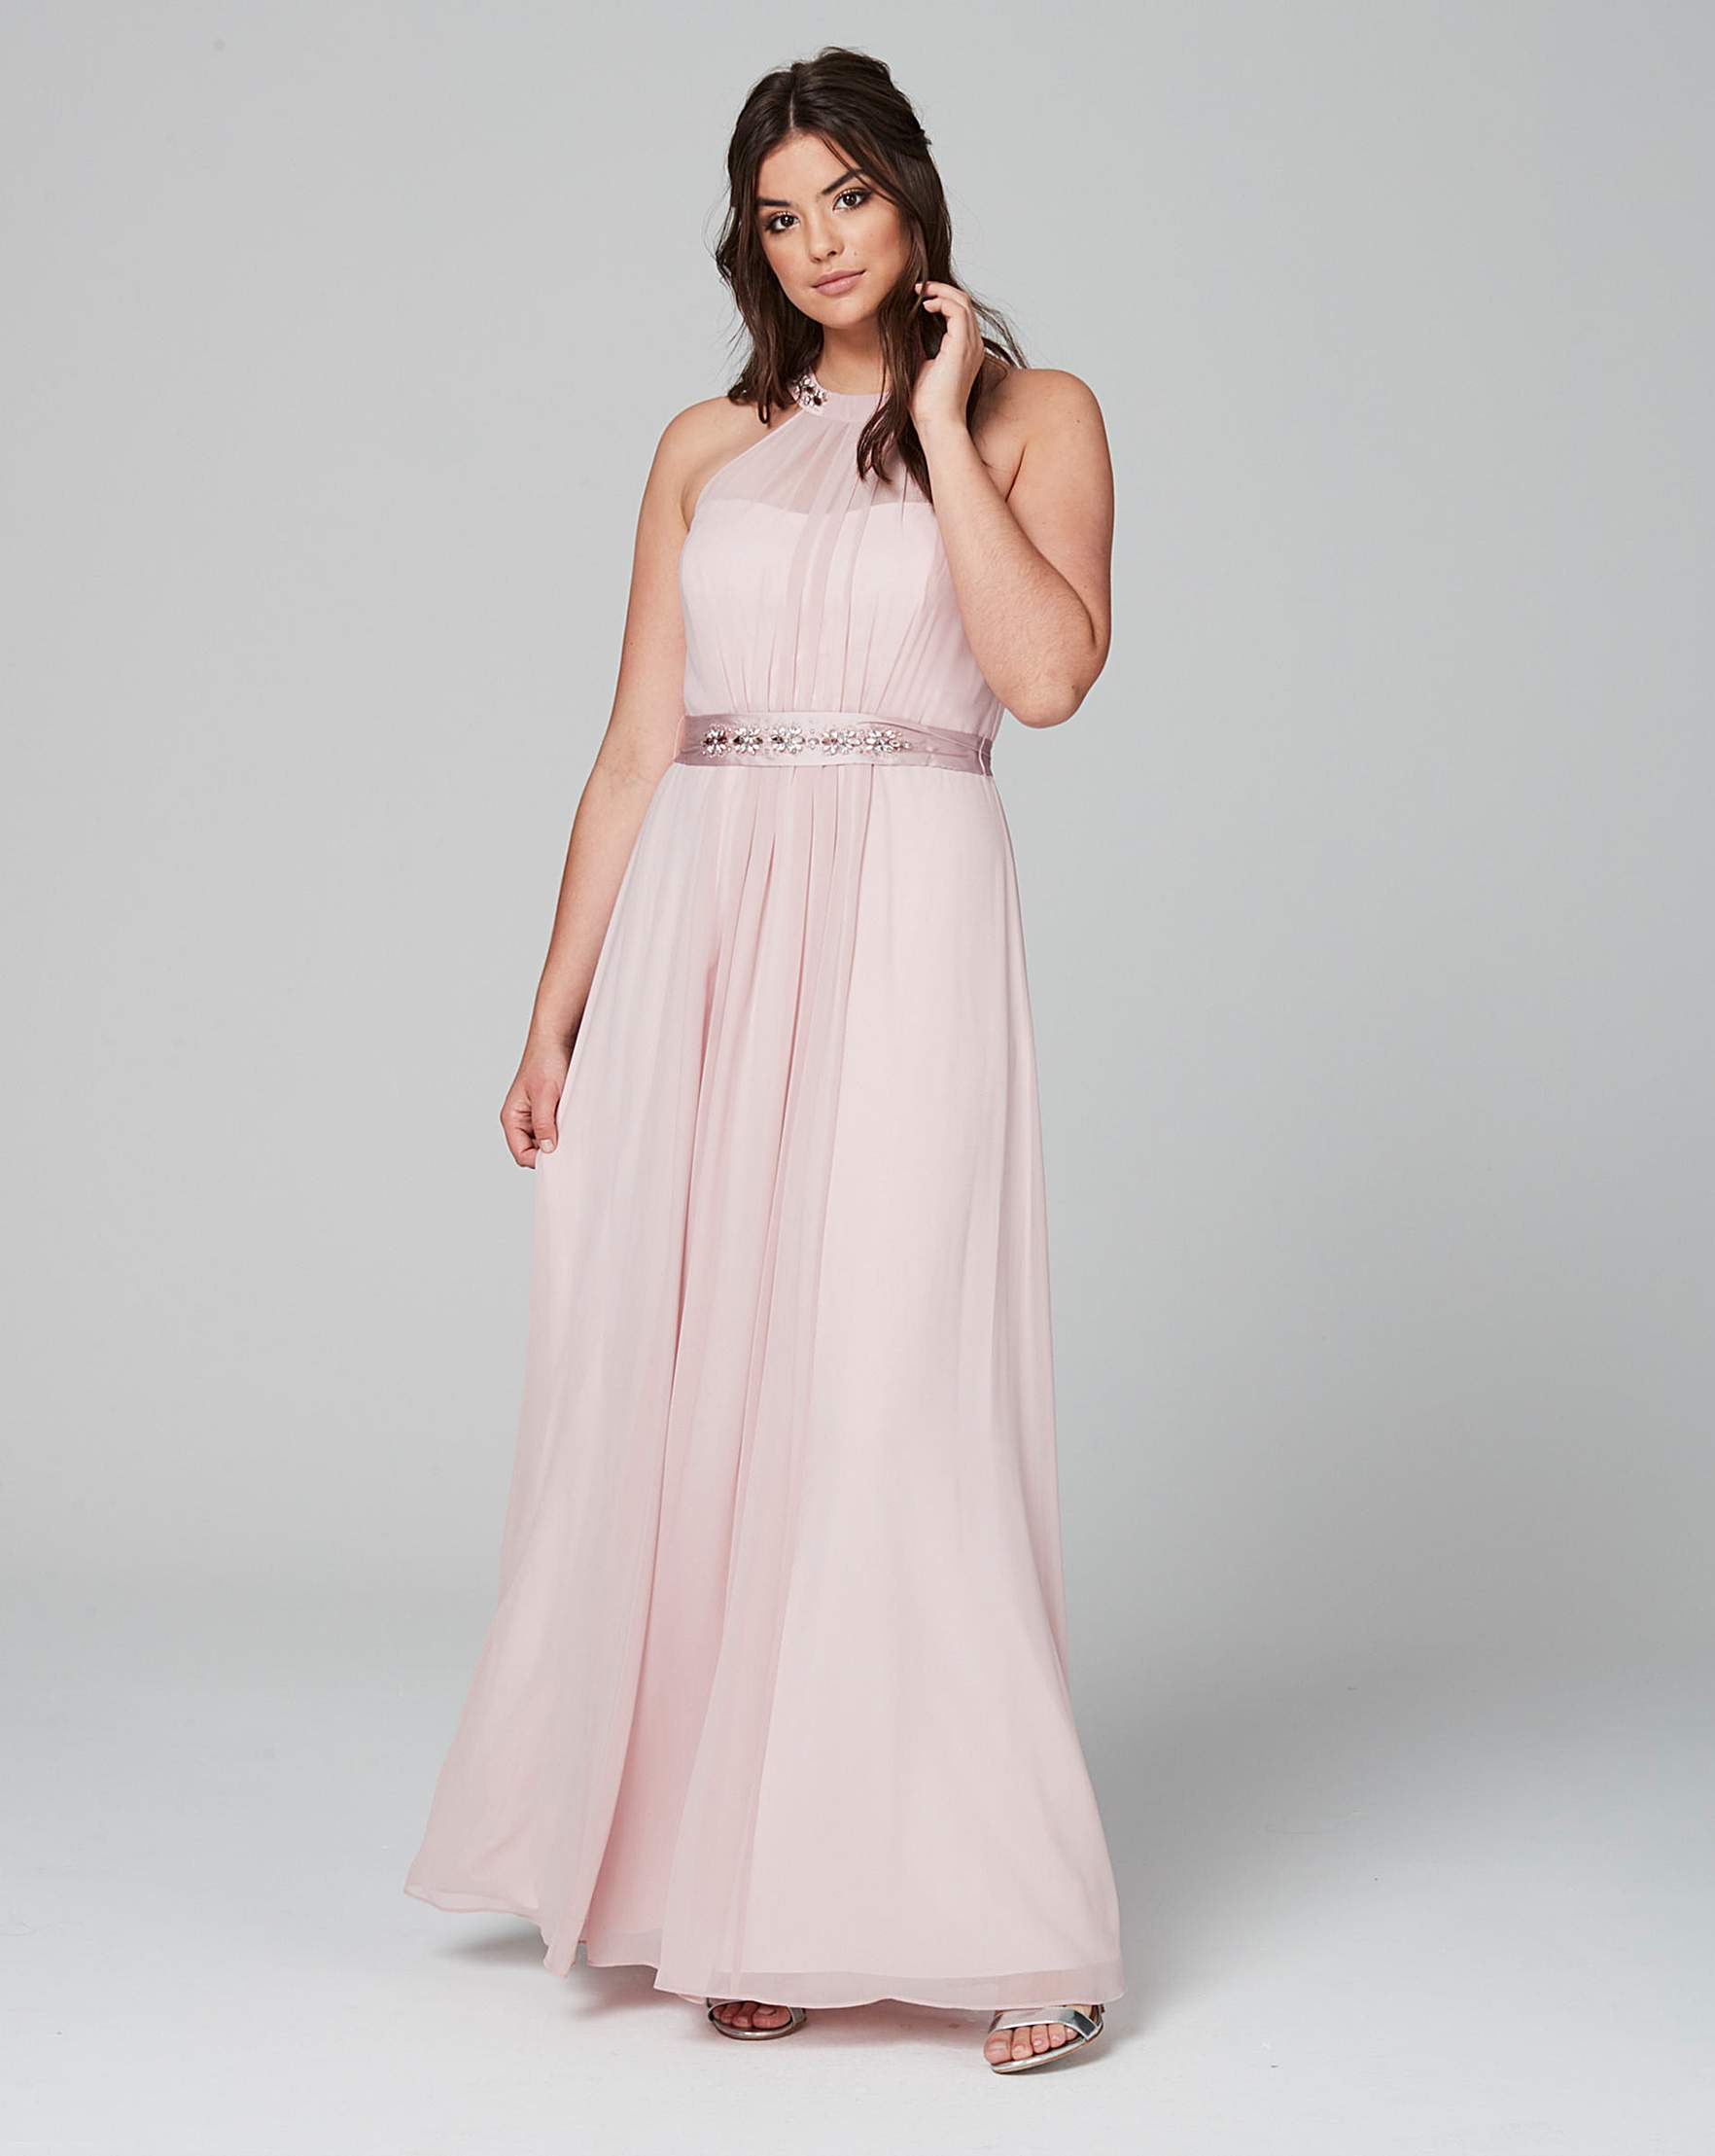 Coast maxi dresses ireland